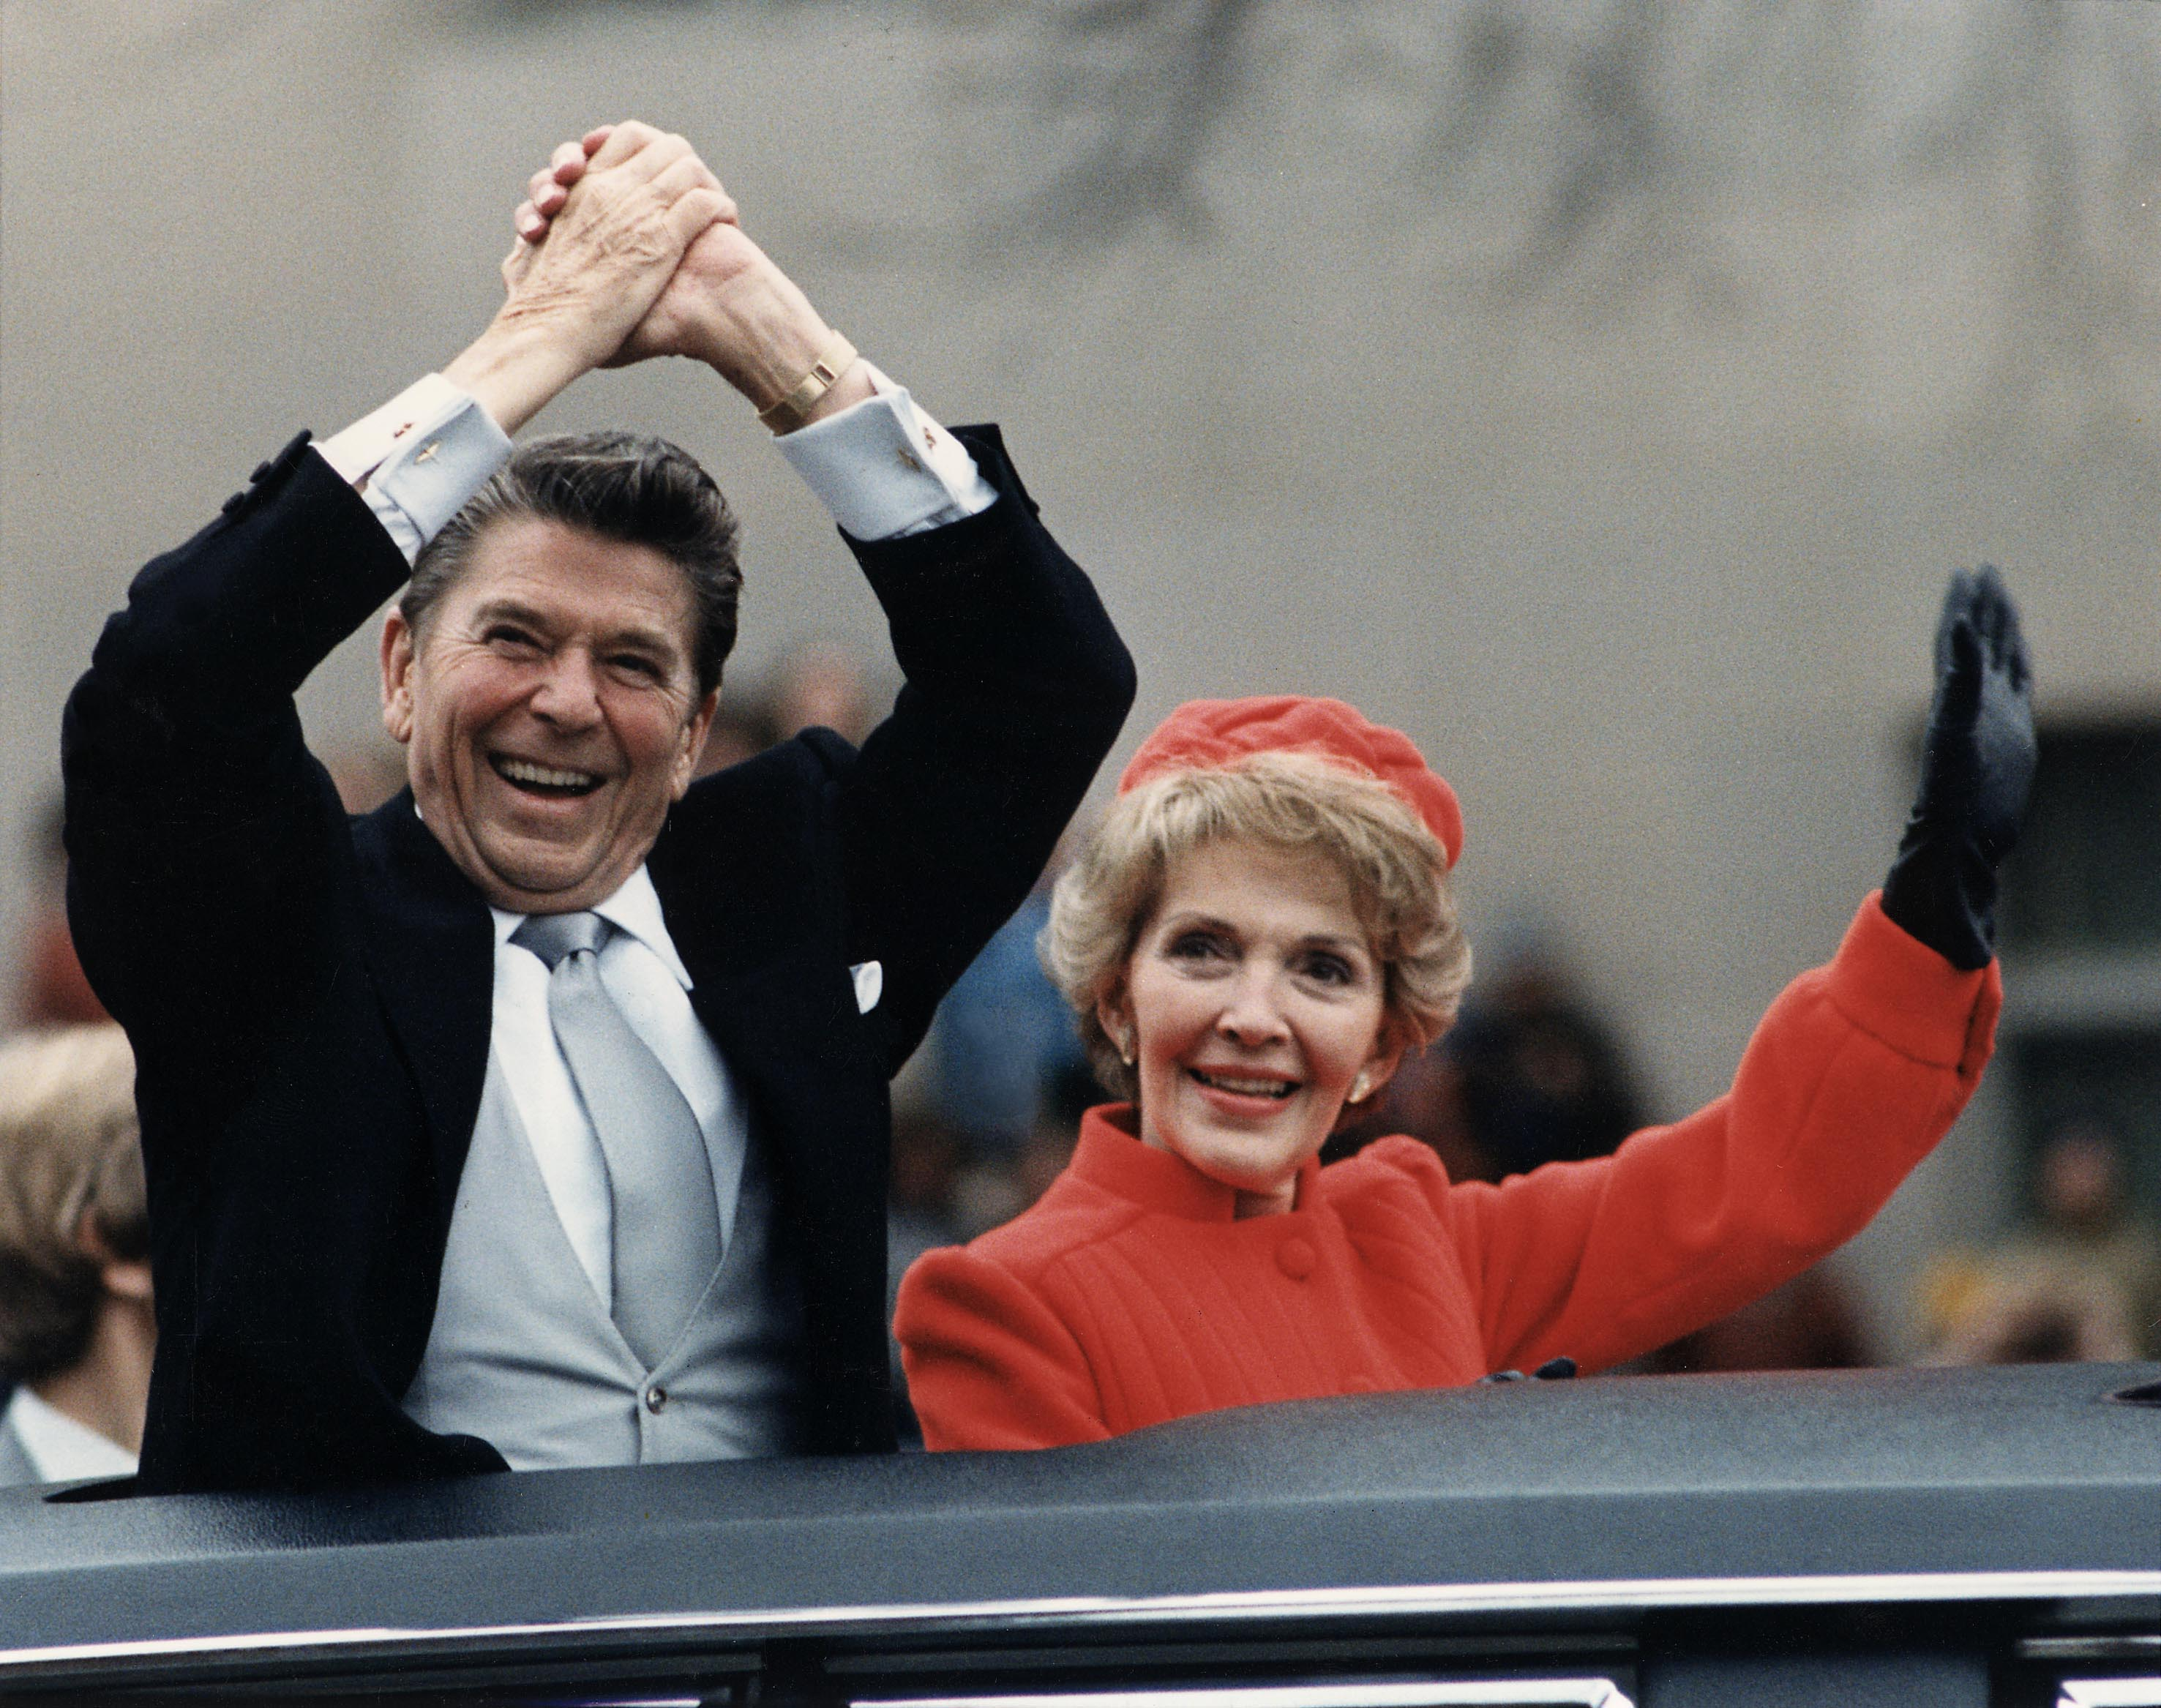 Ronald Reagan and Nancy Reagan waving from the limousine during the Inaugural Parade in Washington, D.C. on Inauguration Day, January 20, 1981.